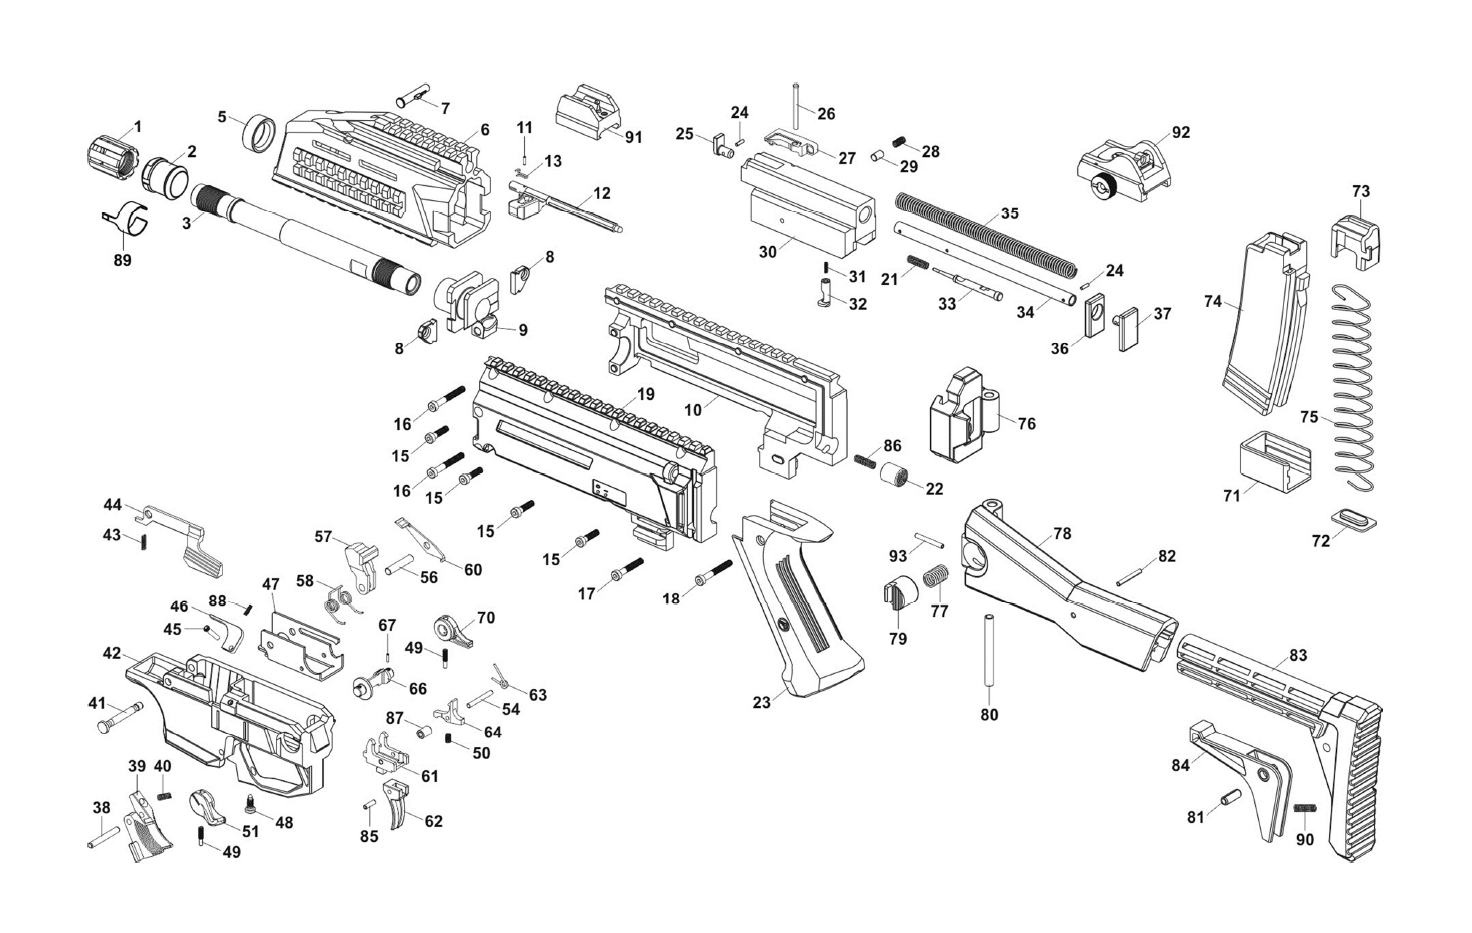 hight resolution of cz scorpion evo 3 s1 exploded view